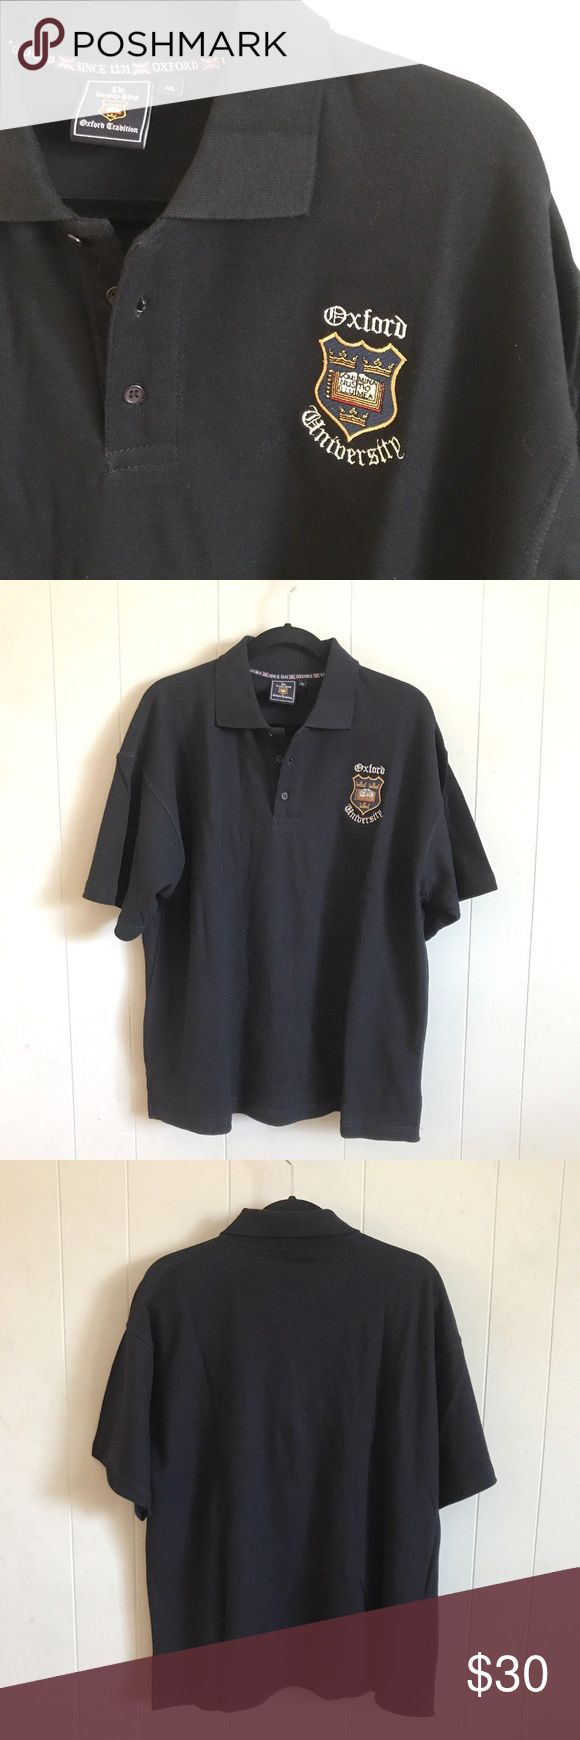 """Official The Varsity Shop Oxford University XL Men's Official The Varsity Shop Oxford University XL Shirt, Navy Blue Embordered Oxford University From the Varity Shop in the UK  Arm Pit to Arm Pit 24.5 and Length 28.5"""" The Varsity Shop Oxford University Shirts Polos"""